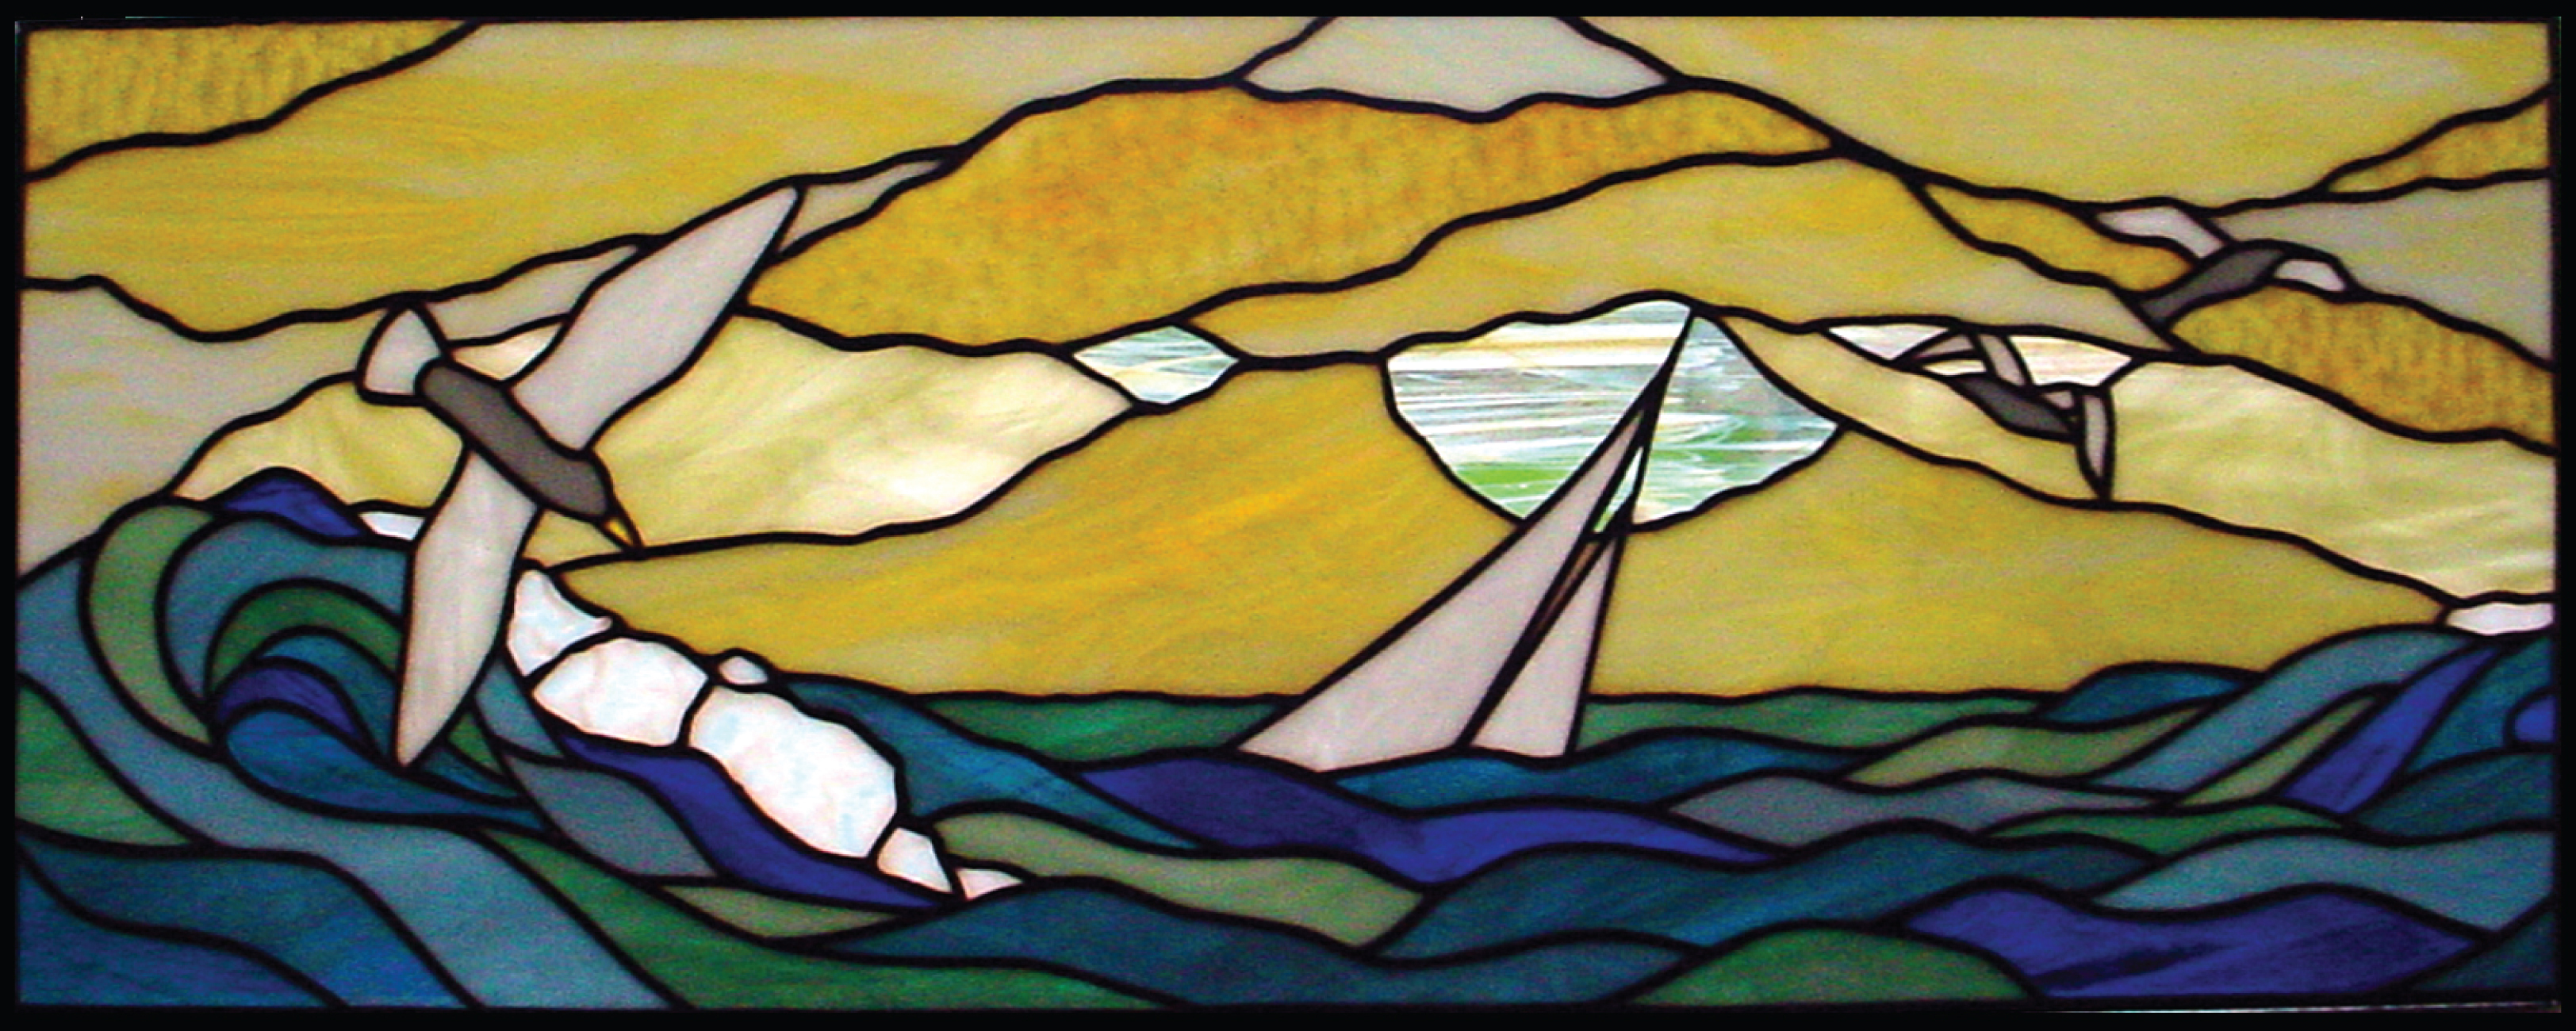 """Seagul, Boat, clouds & Waves"" 2004, tiffany"